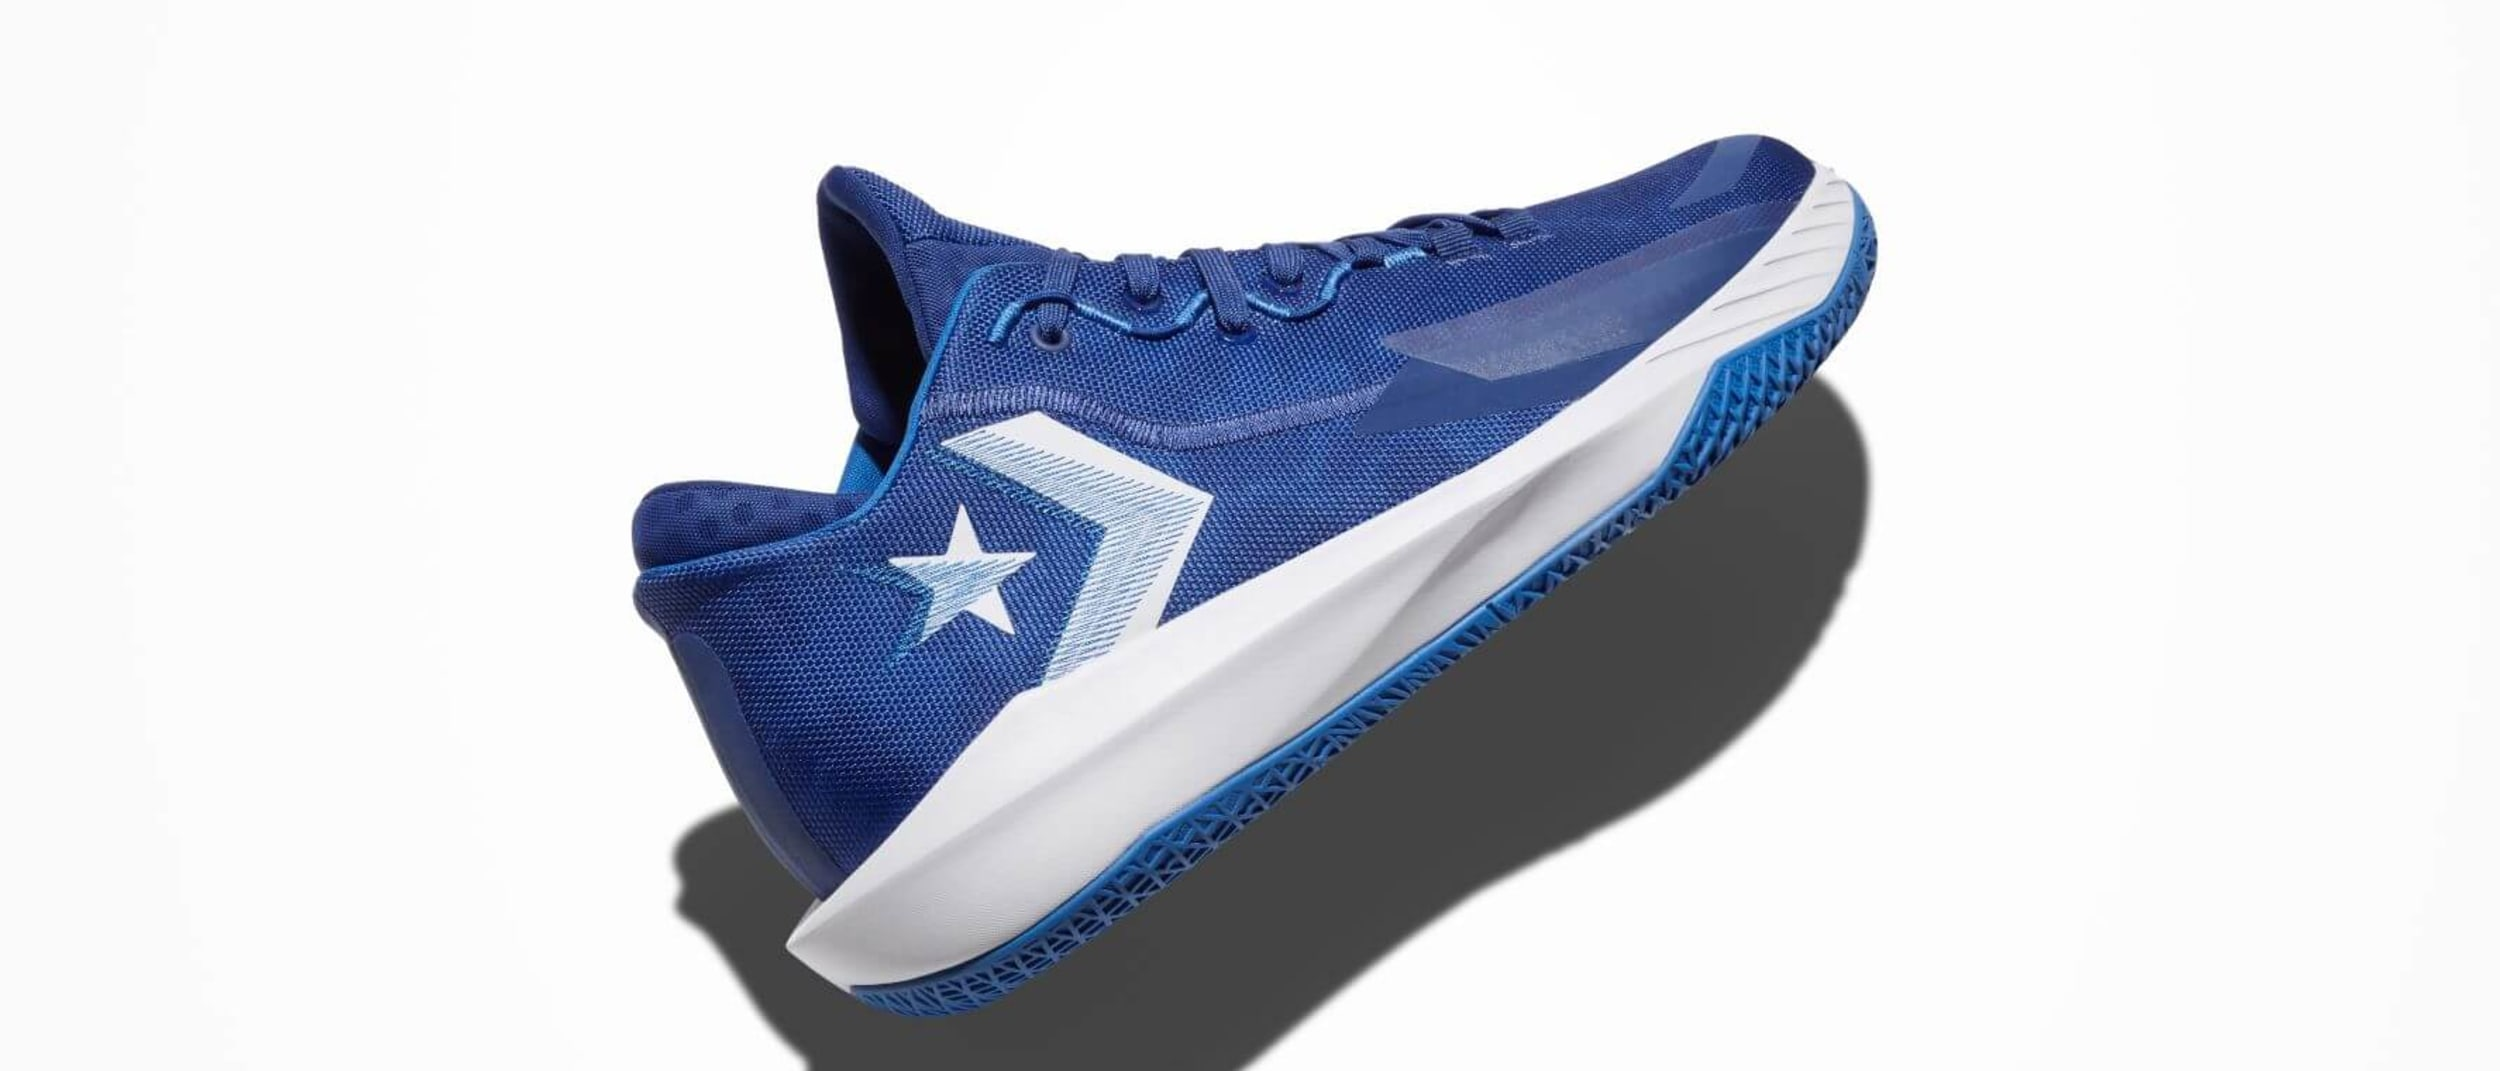 Converse: Introducing The All Star BB Jet